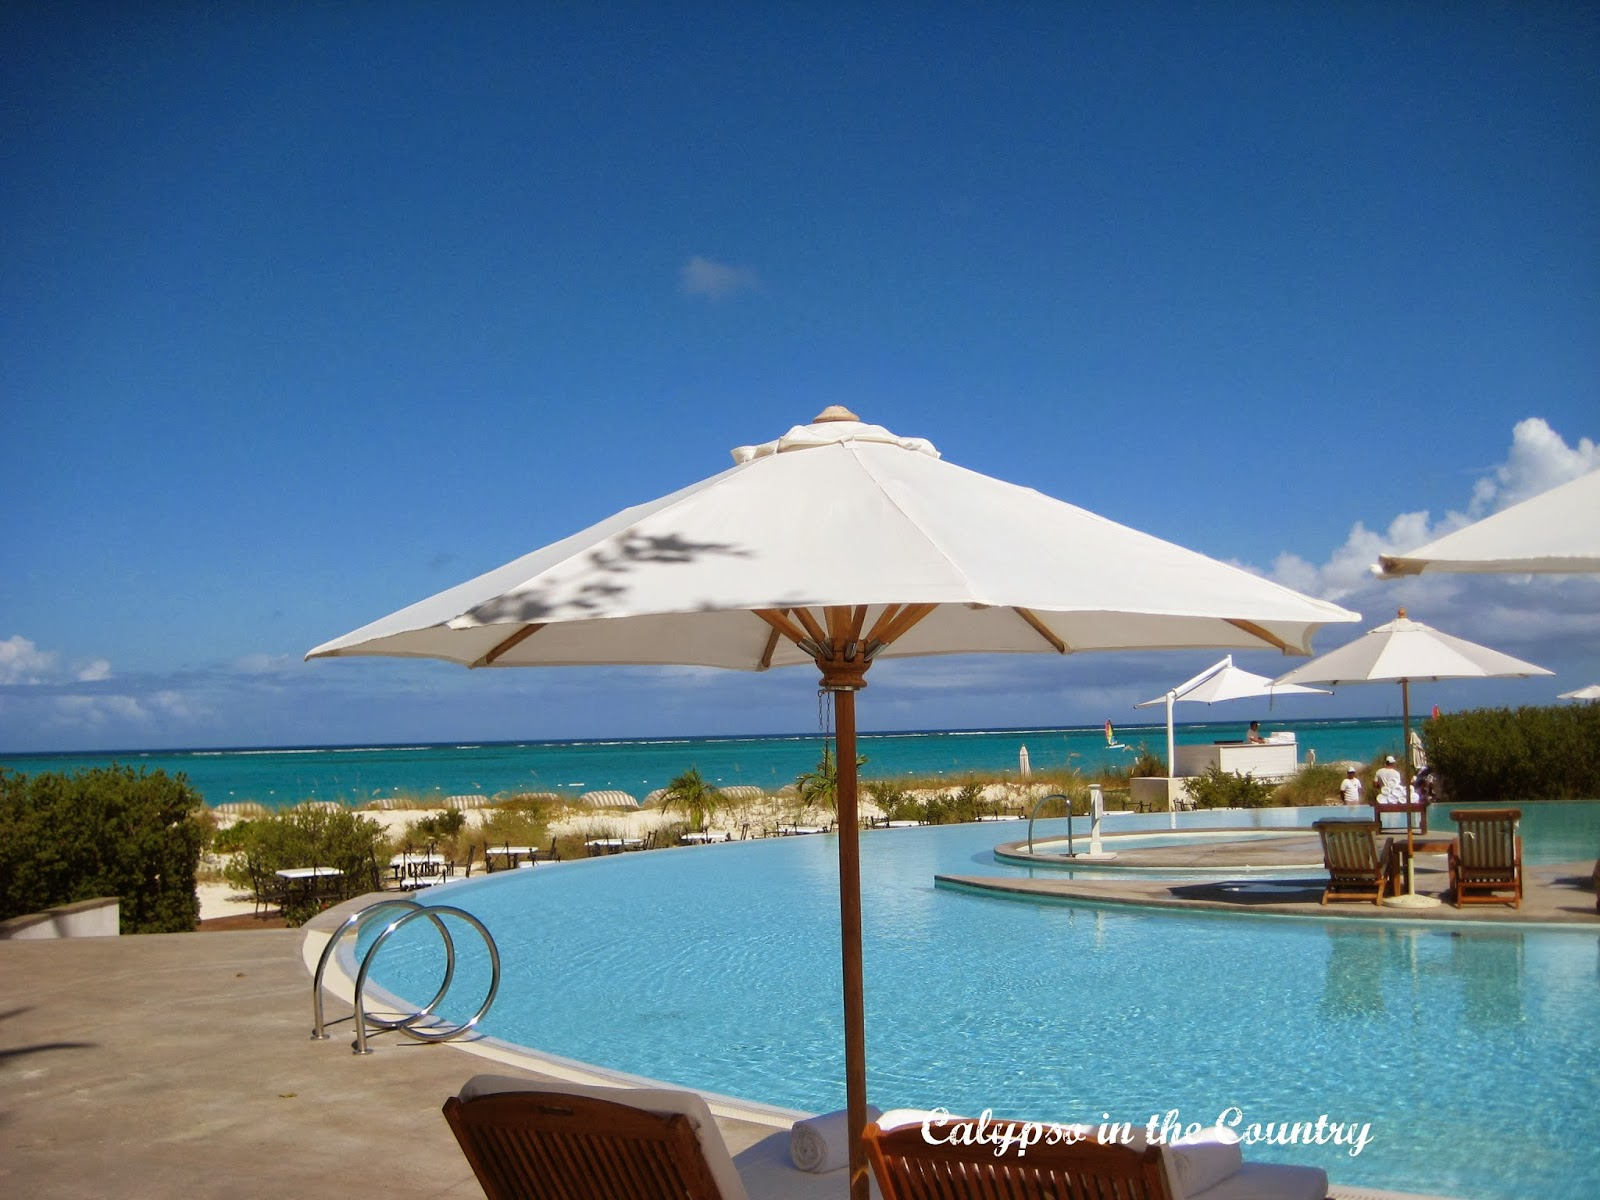 Umbrella at the Palms Turks and Caicos